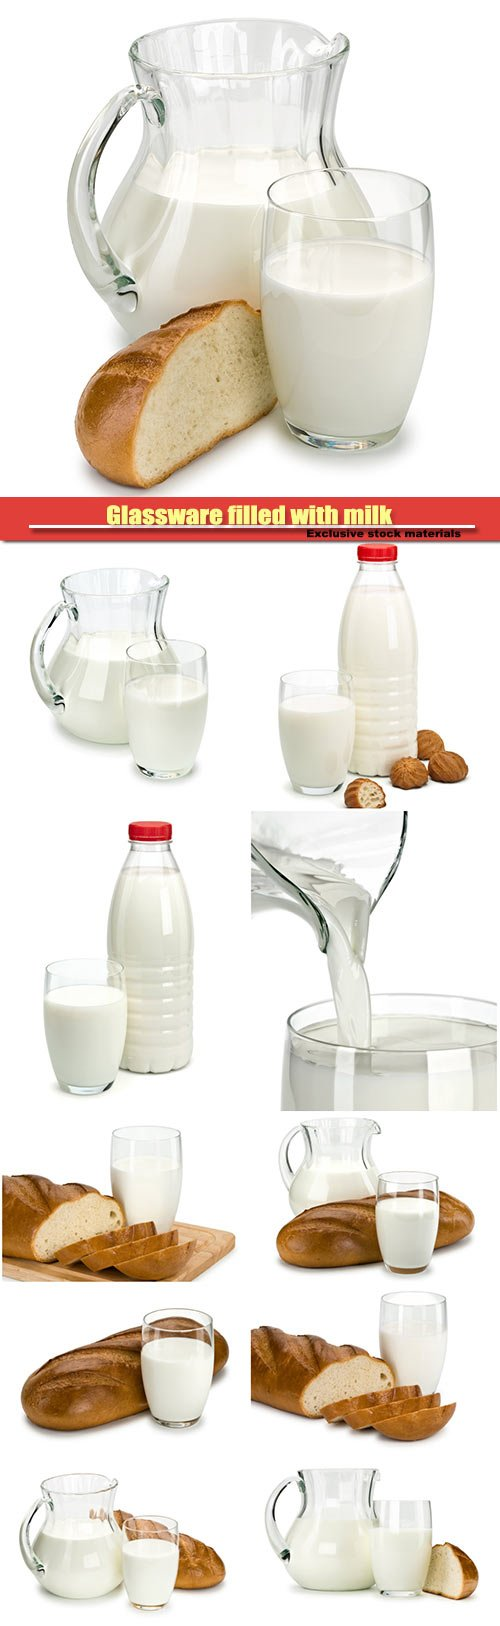 Glassware filled with milk and a white loaf long loaf